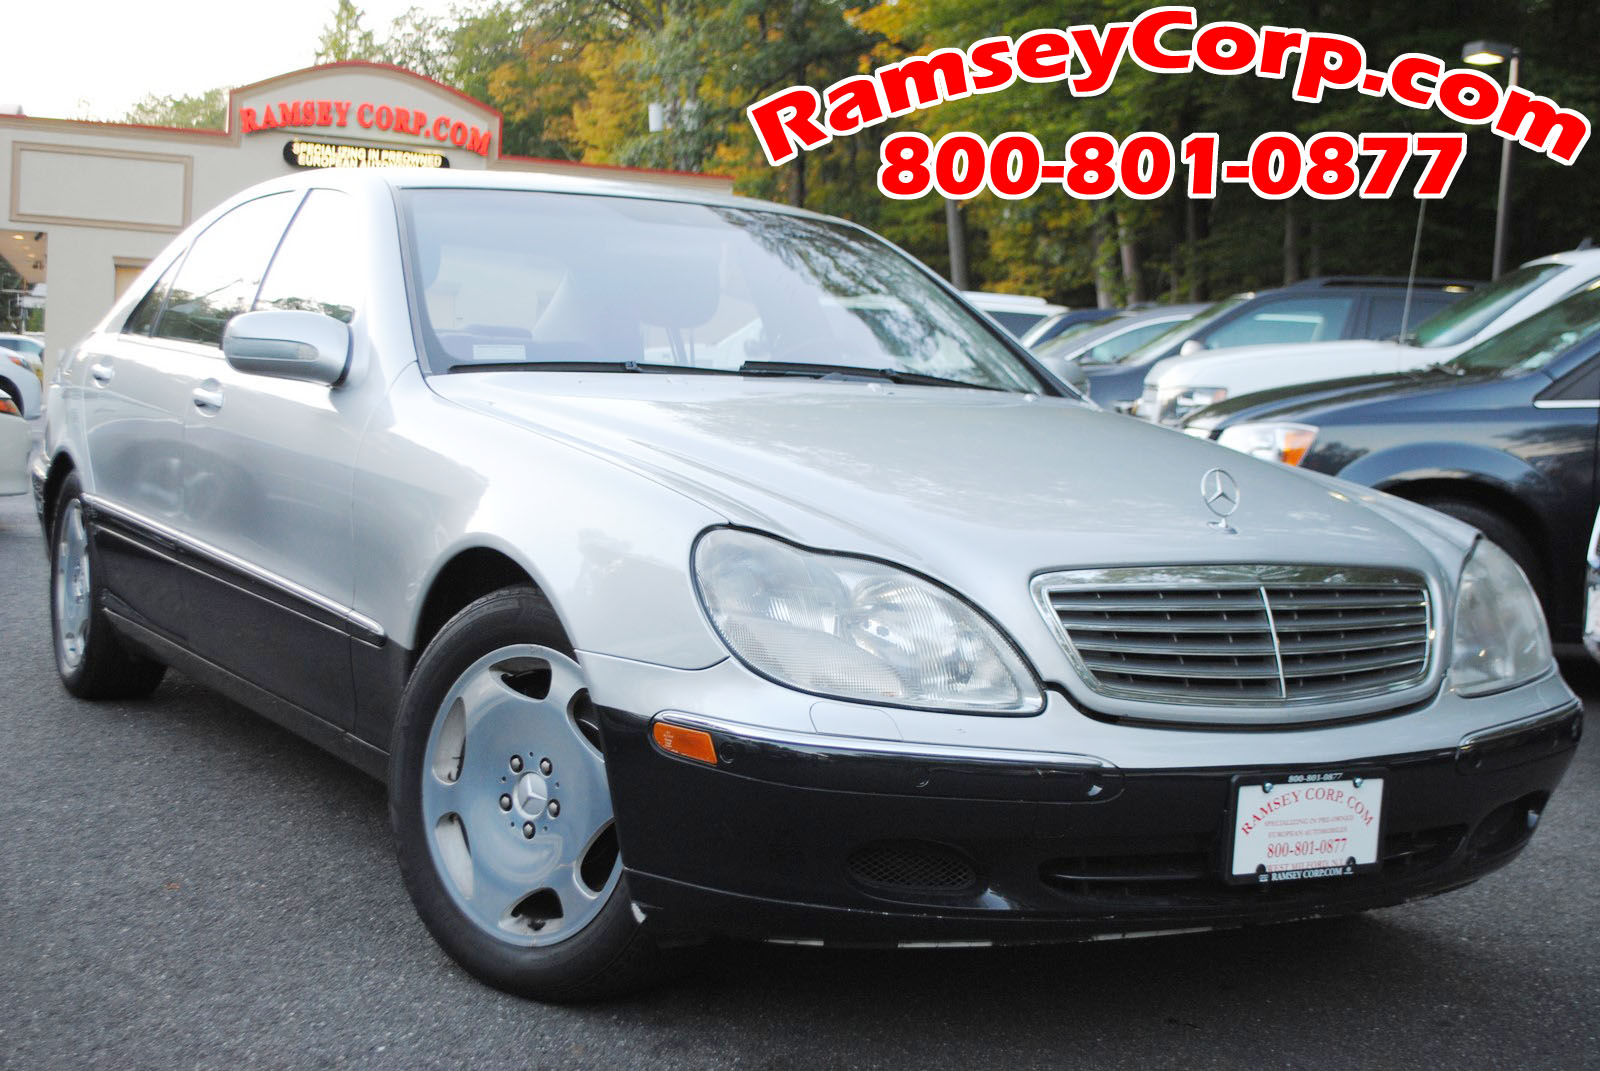 Used 2001 mercedes benz s class for sale west milford nj for Mercedes benz s class 2001